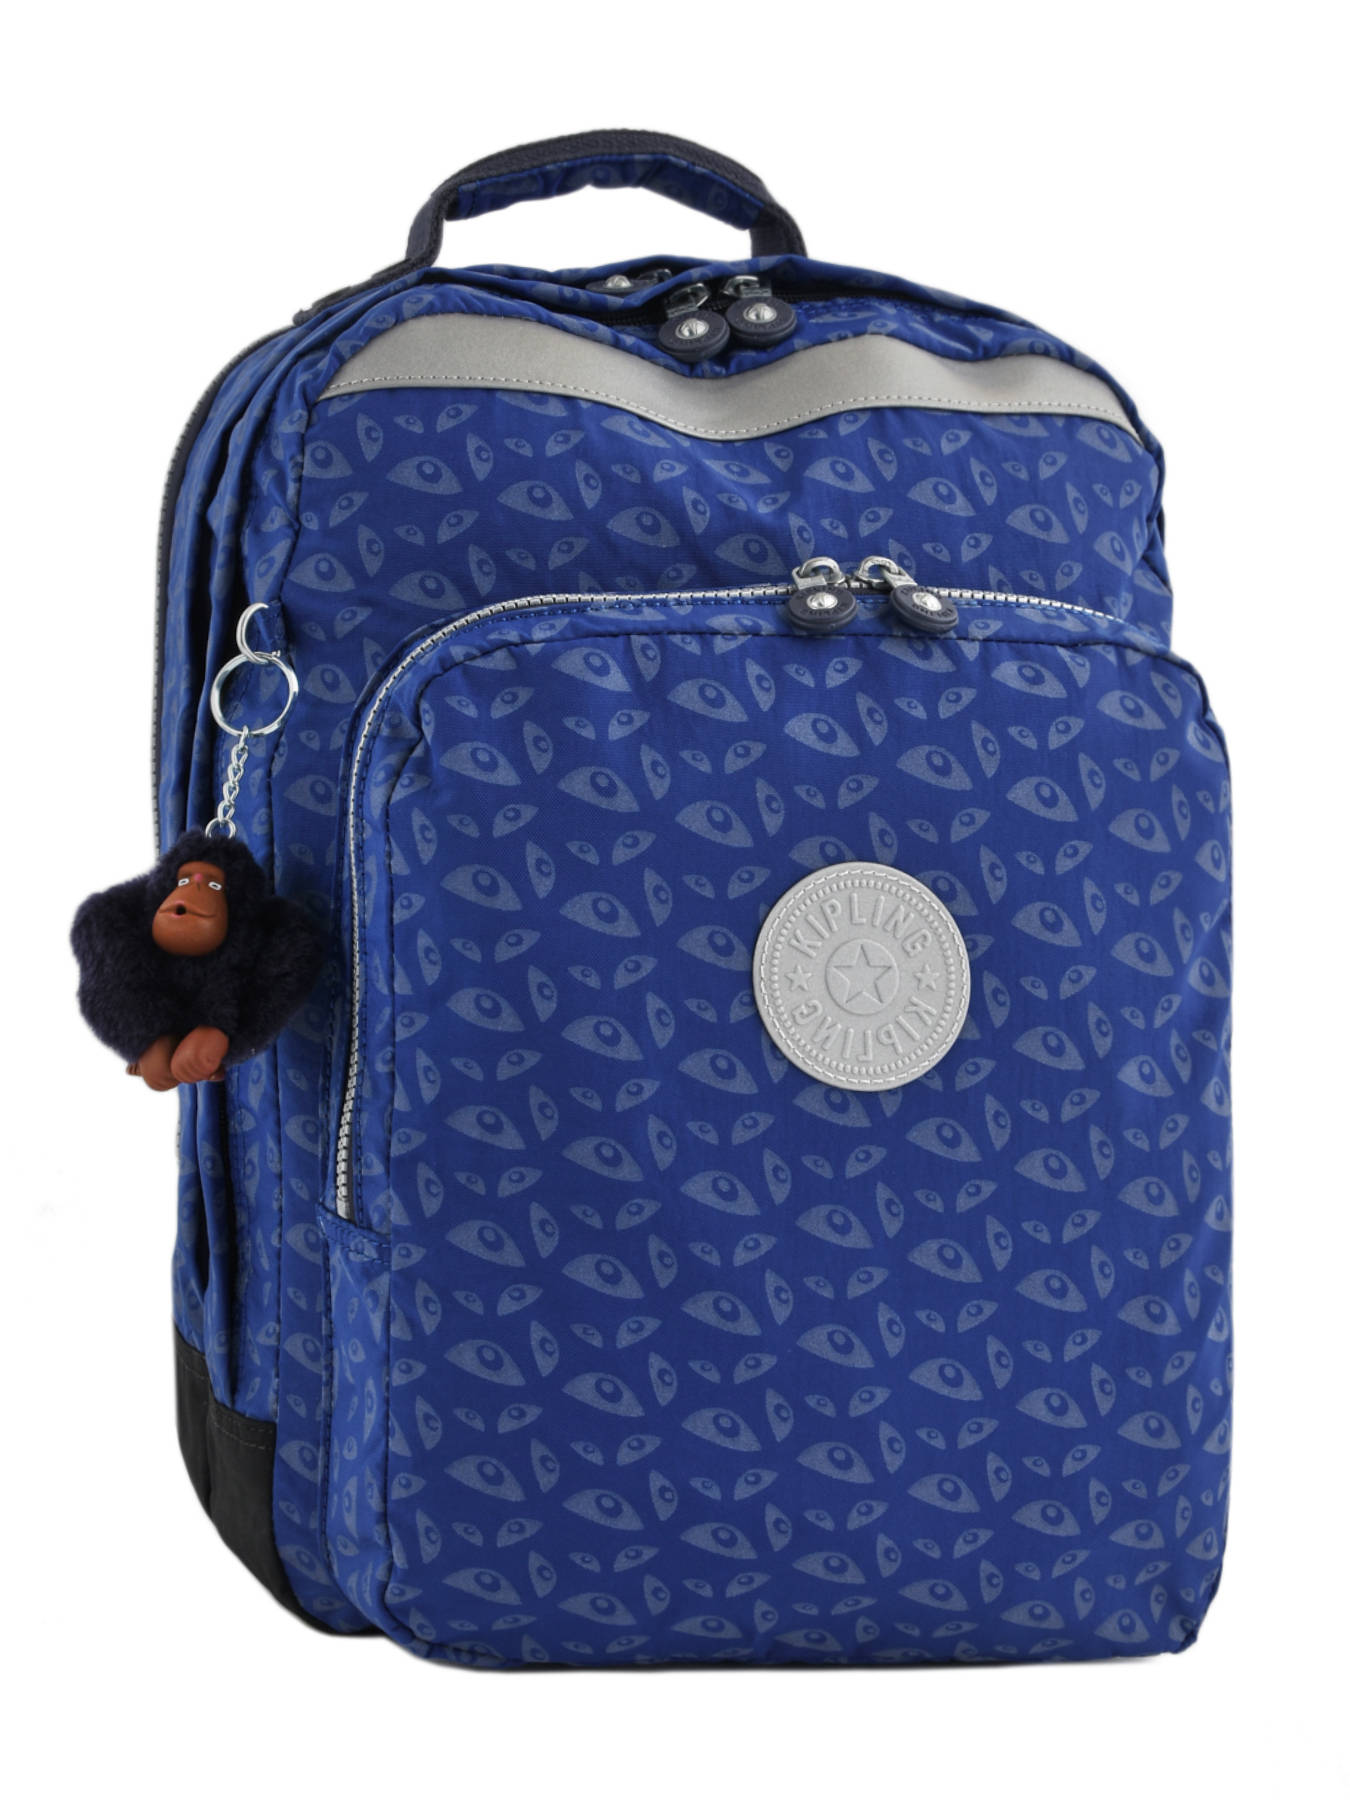 1c91e3e2508 Rugzak 2 Compartimenten + Pc 15'' Kipling Blauw back to school capsule 408  ...